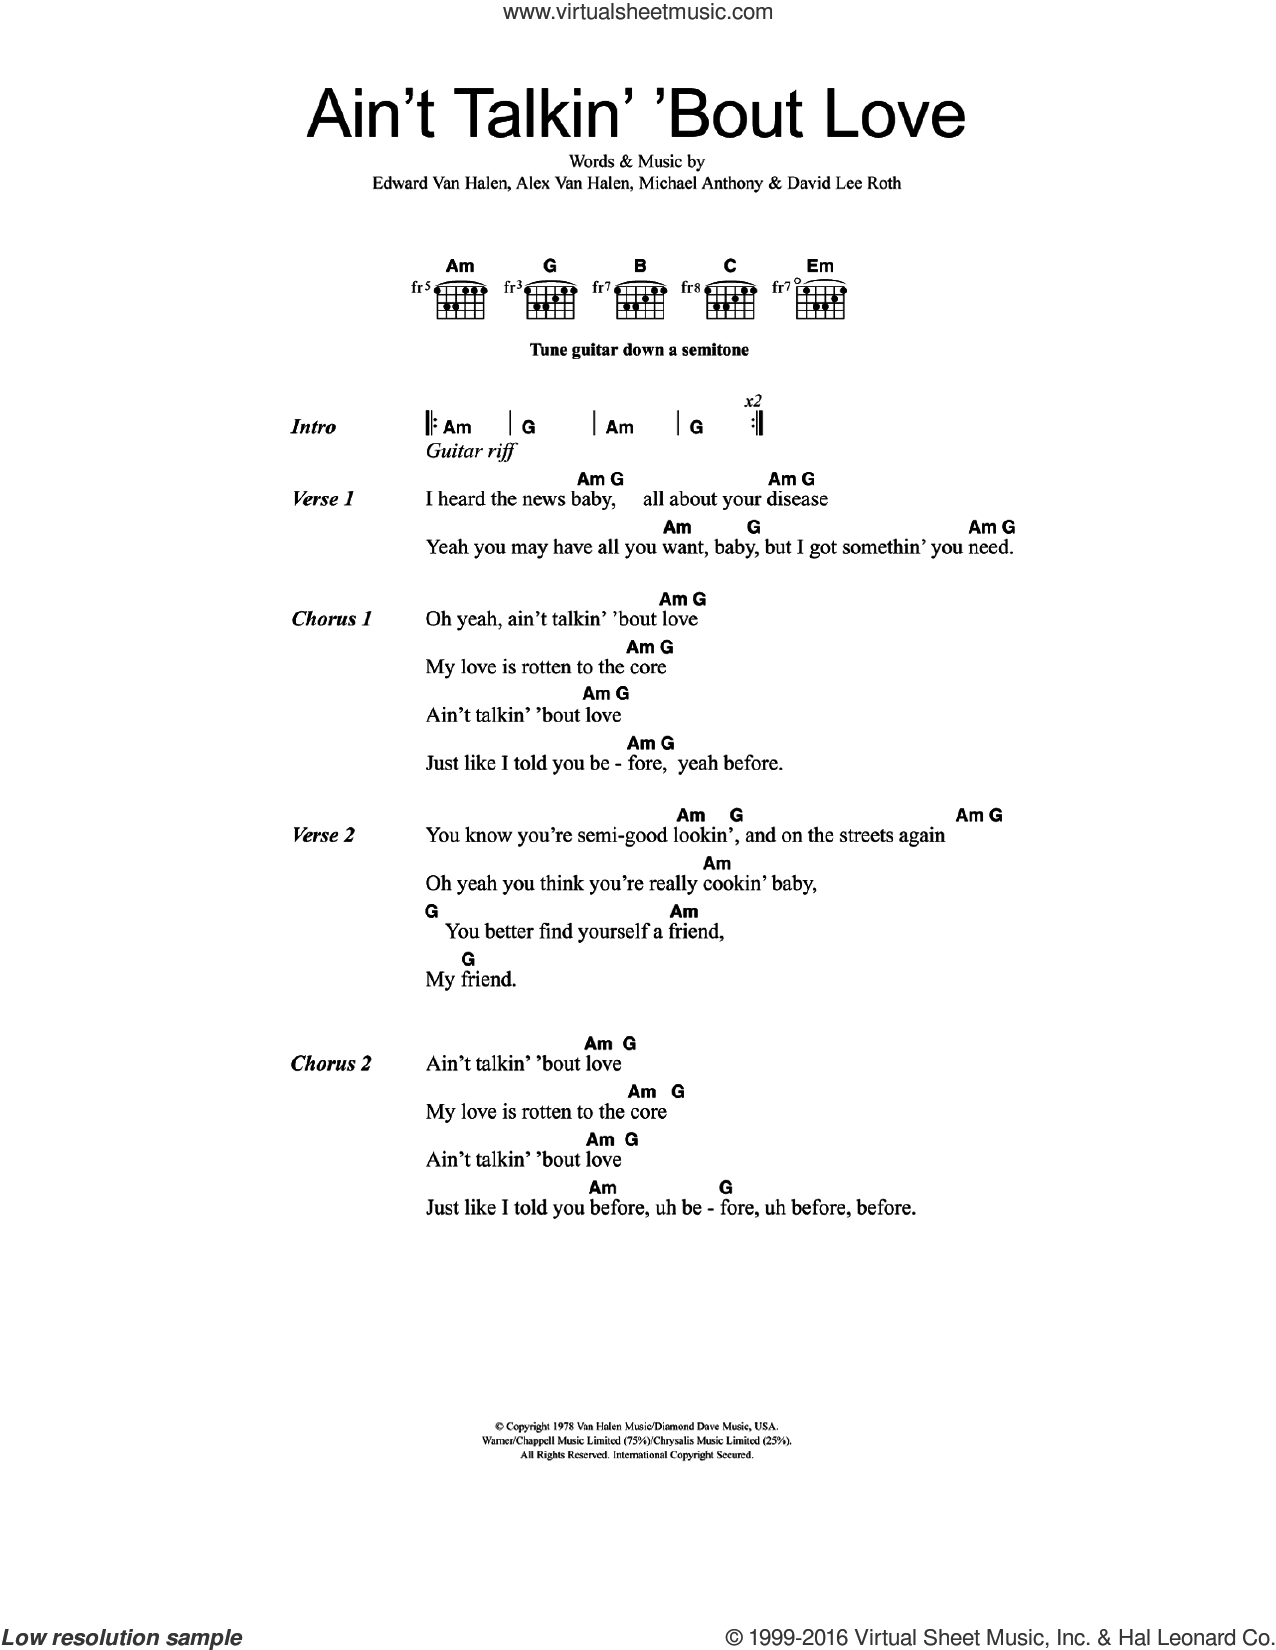 Ain't Talkin' 'Bout Love sheet music for guitar (chords) by Edward Van Halen, Alex Van Halen, David Lee Roth and Michael Anthony, intermediate skill level